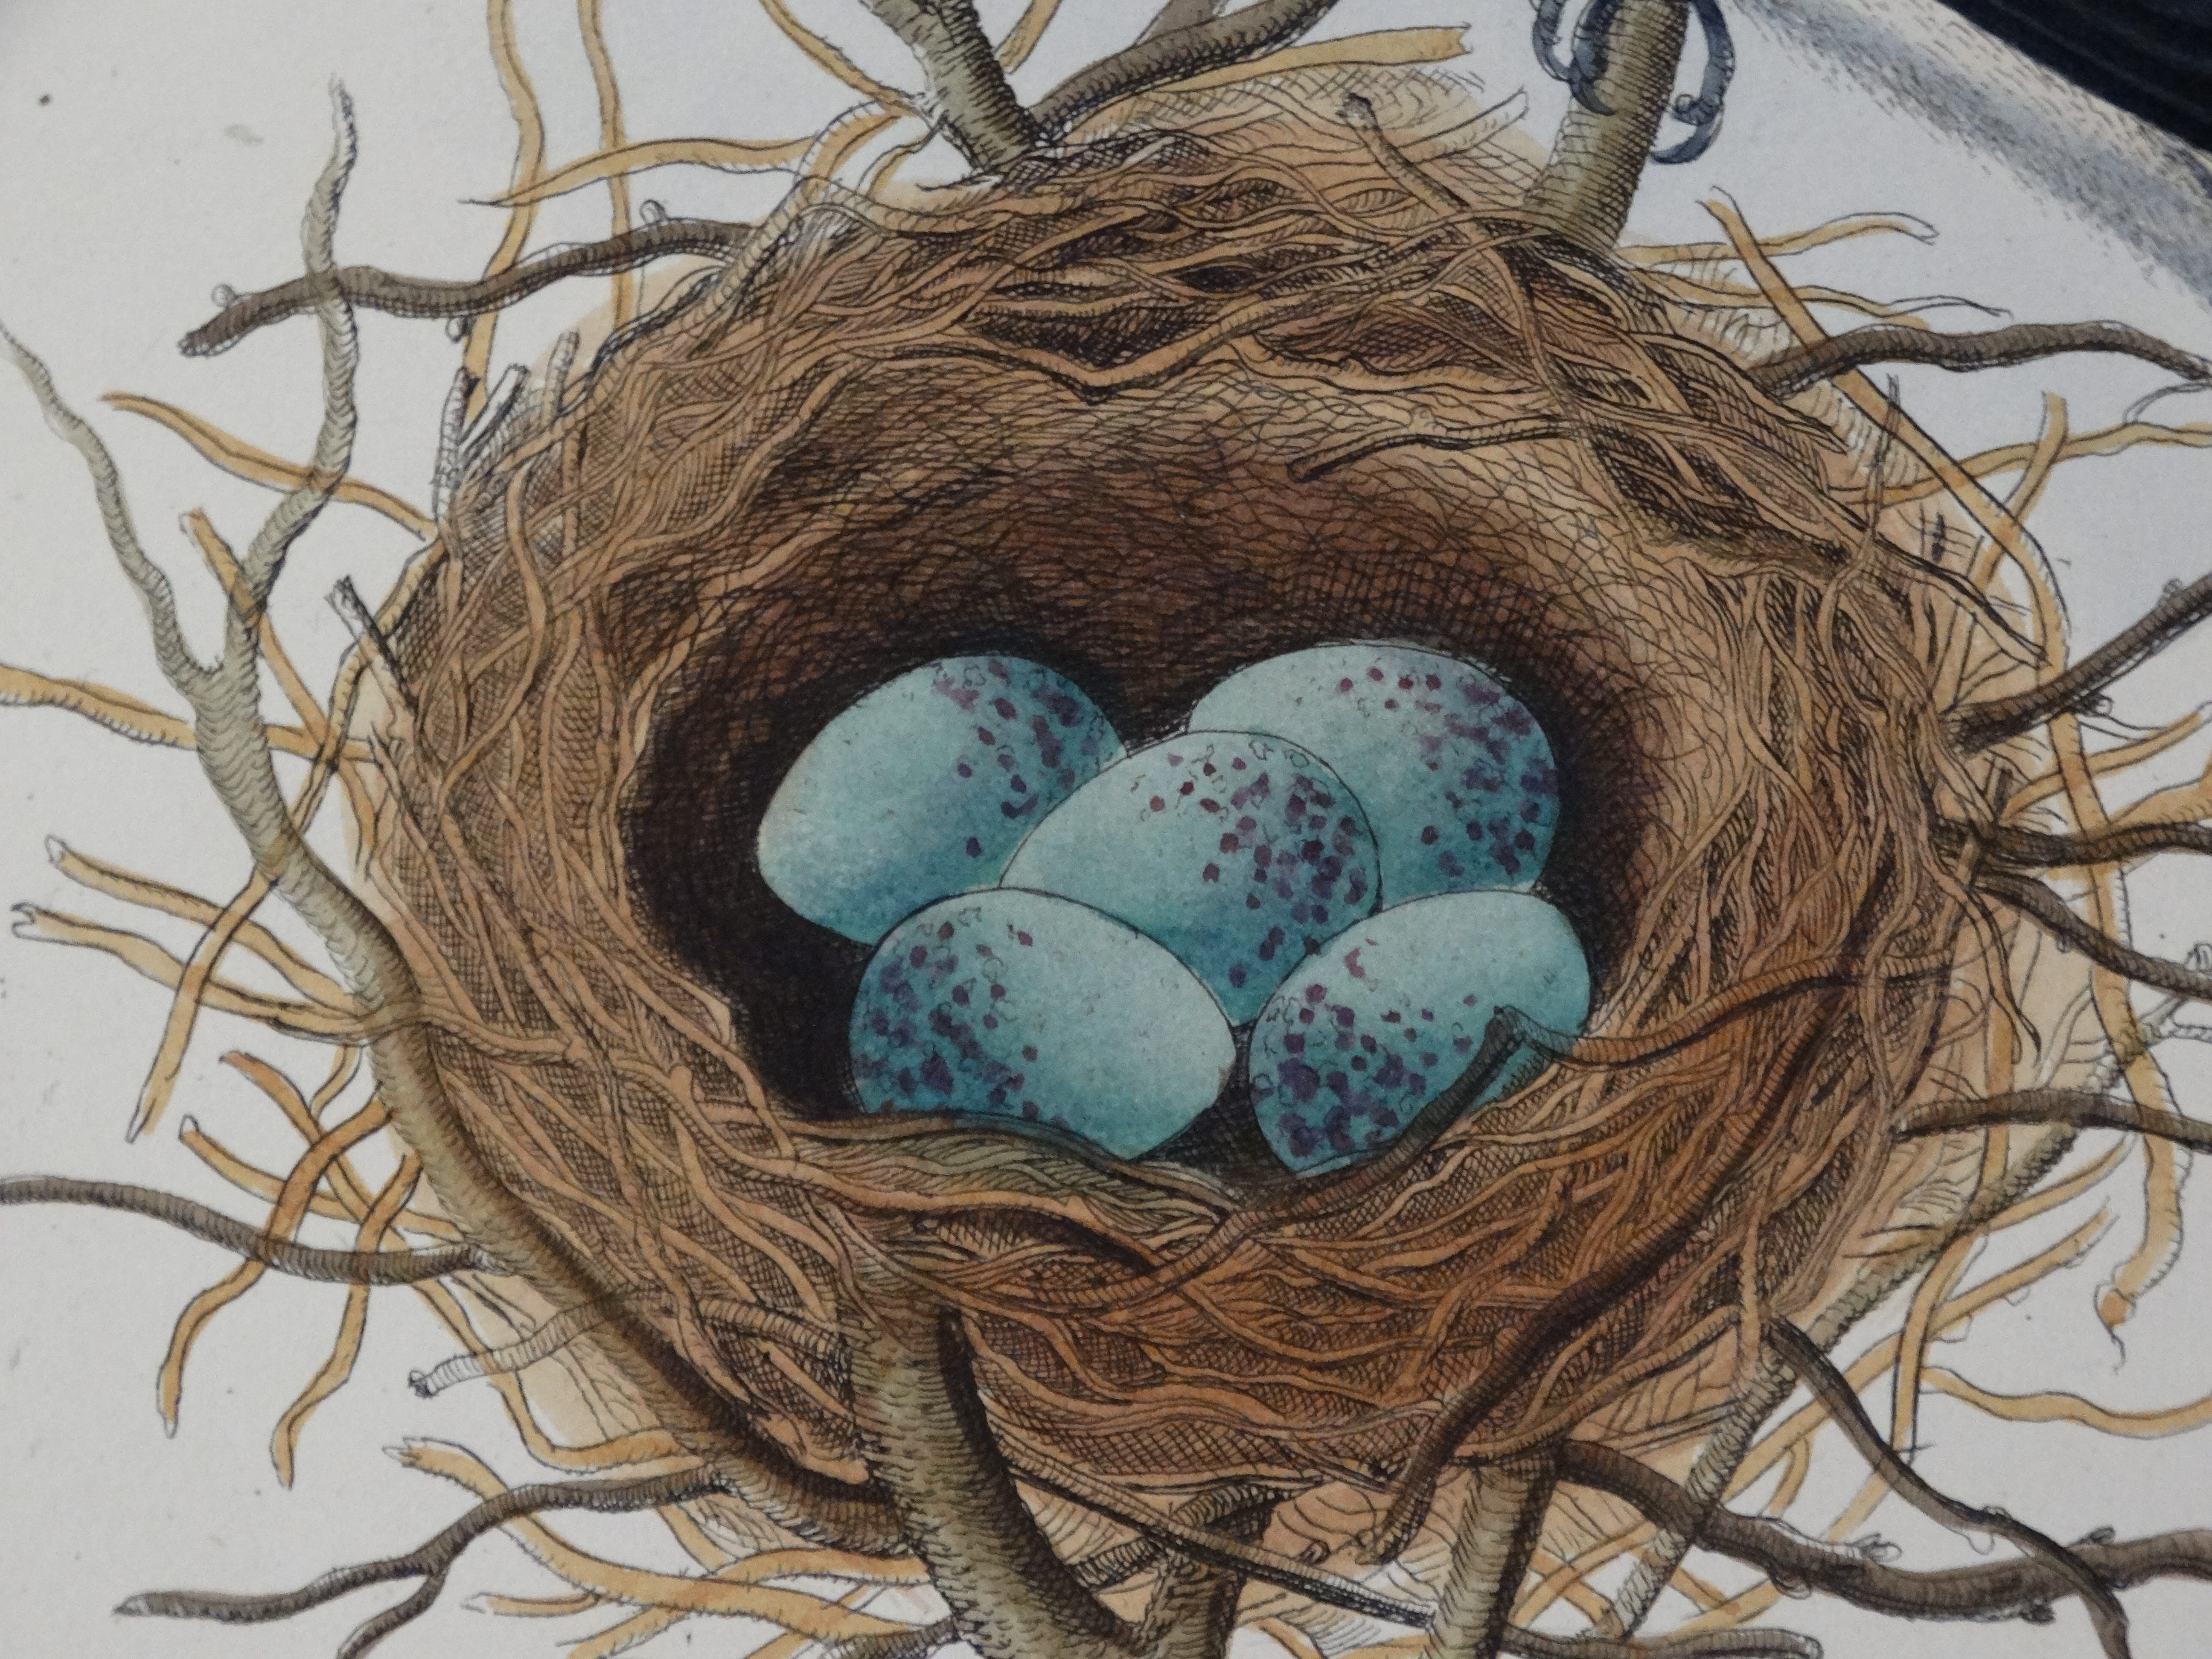 Nests Eggs antique engravings lithographs to buy online now!